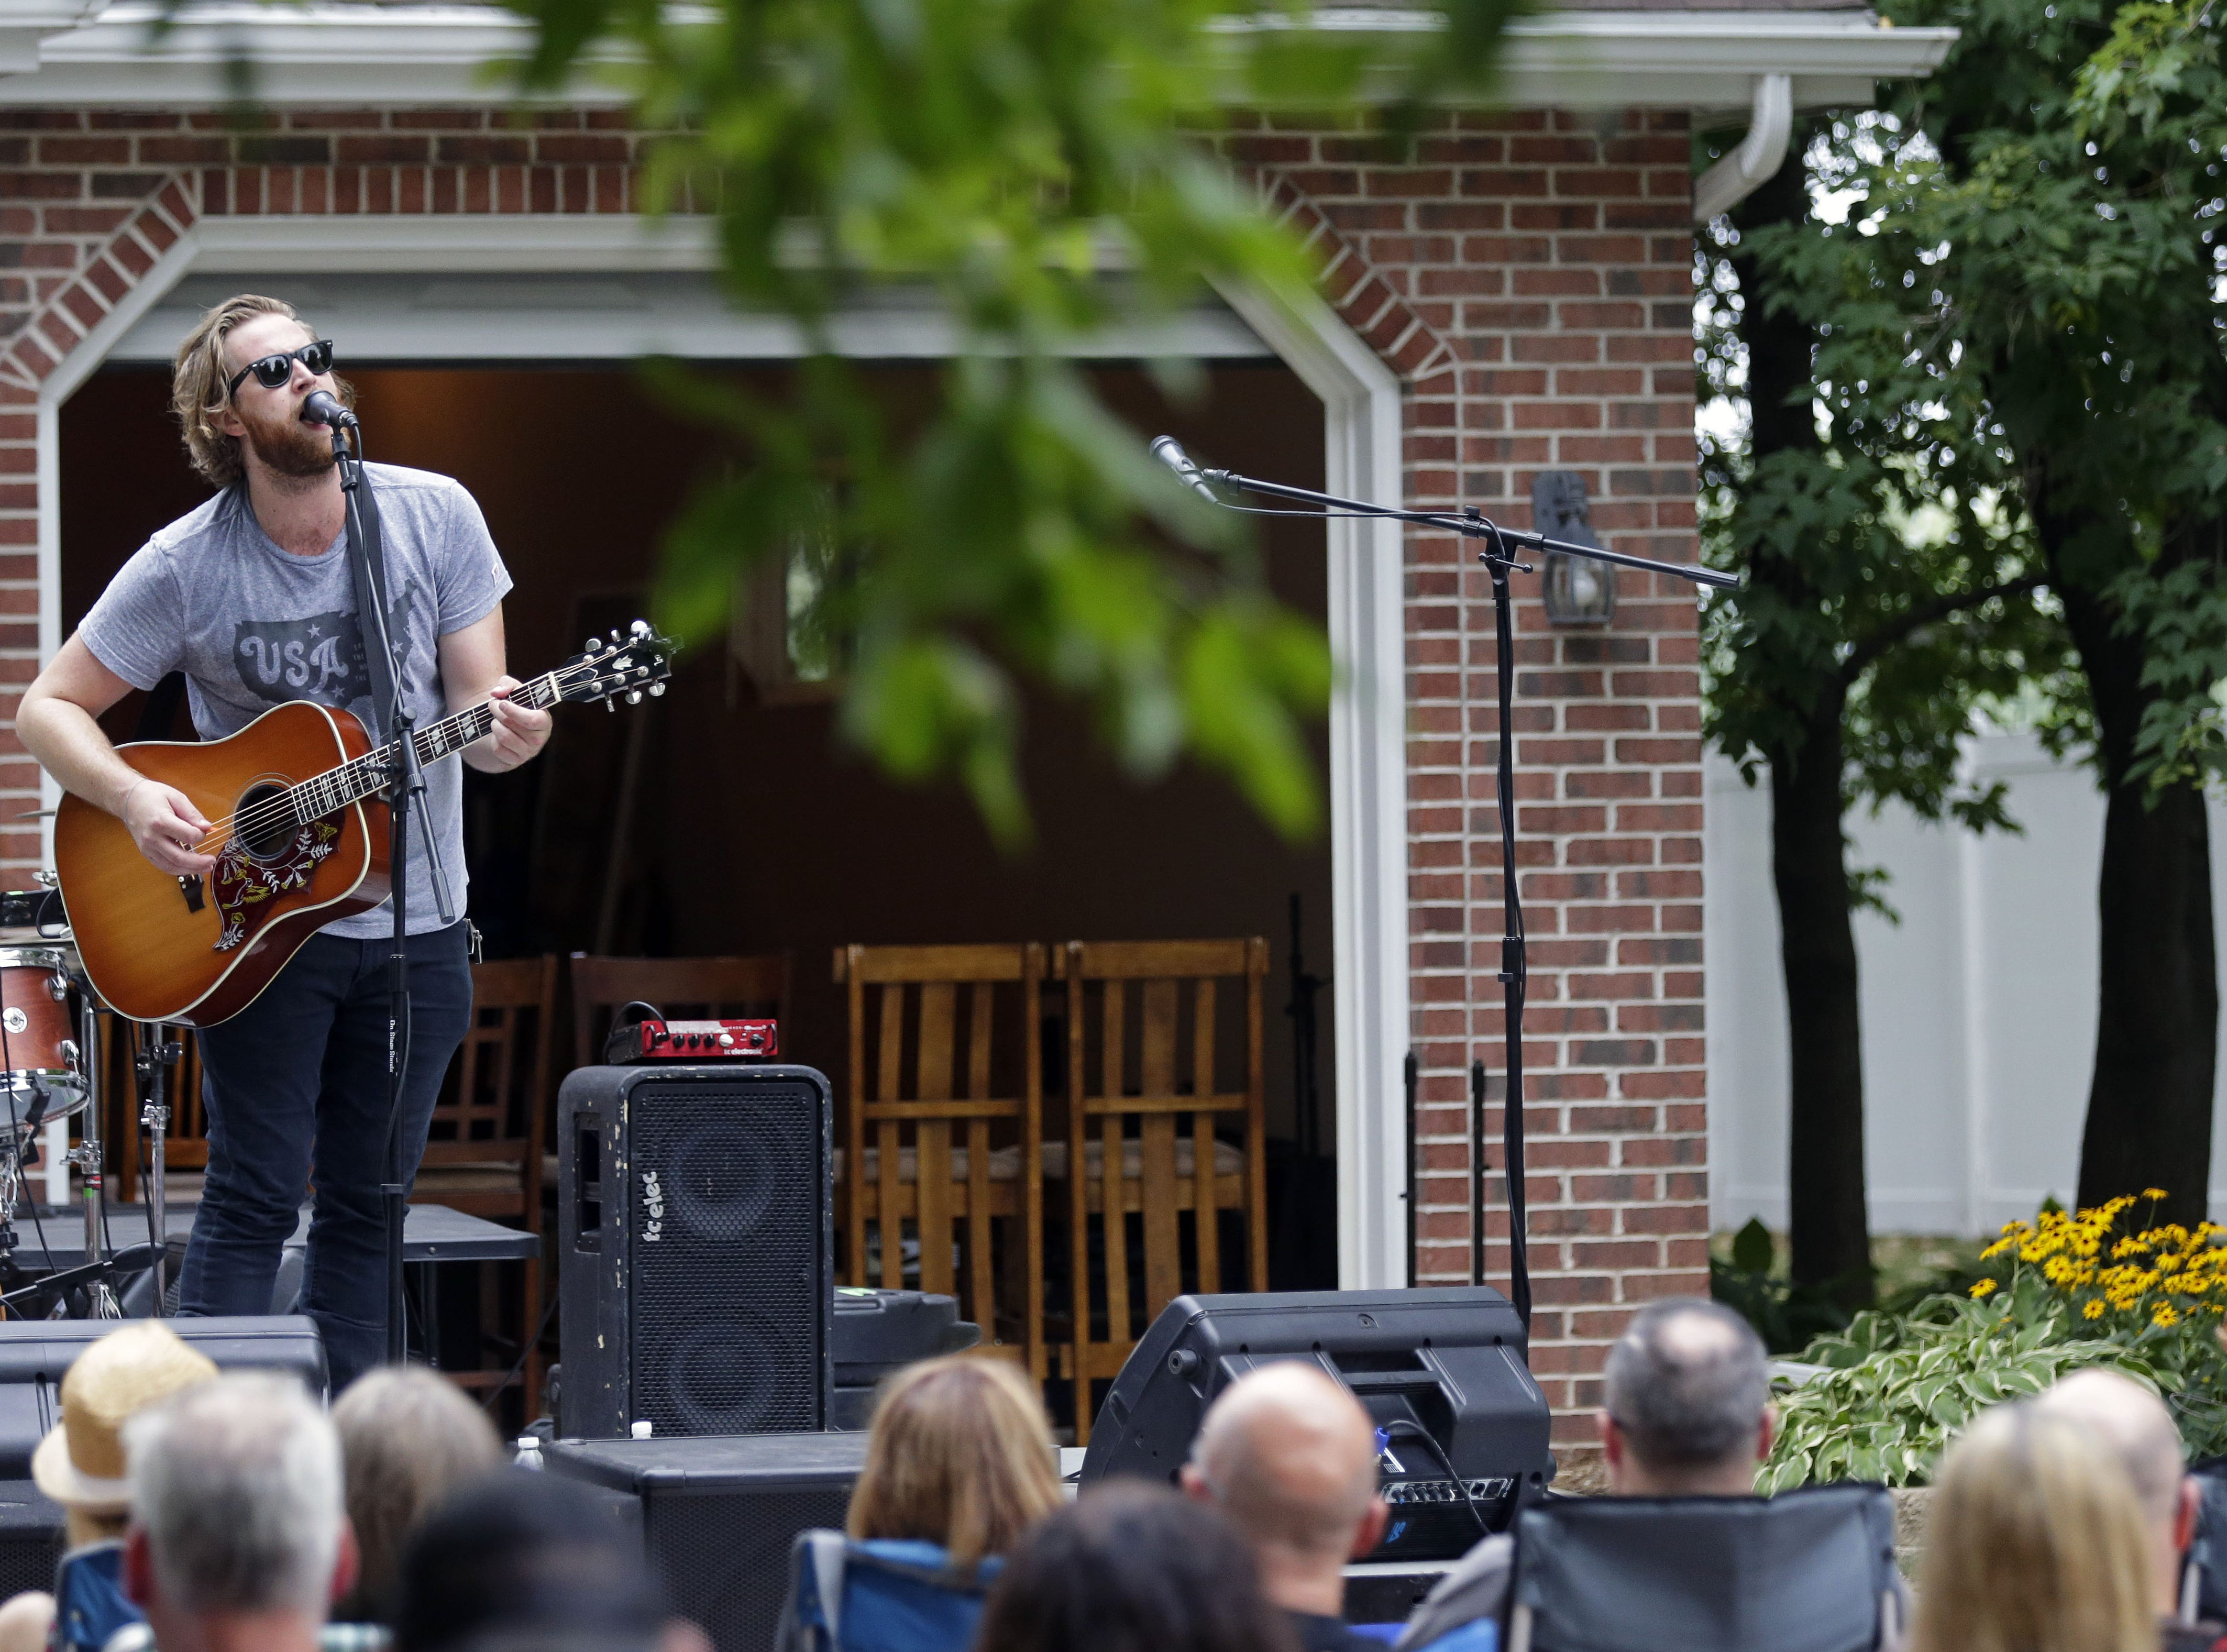 Carter Hulsey performs at the home of Todd Van Hammond on Aug. 26 in Appleton.